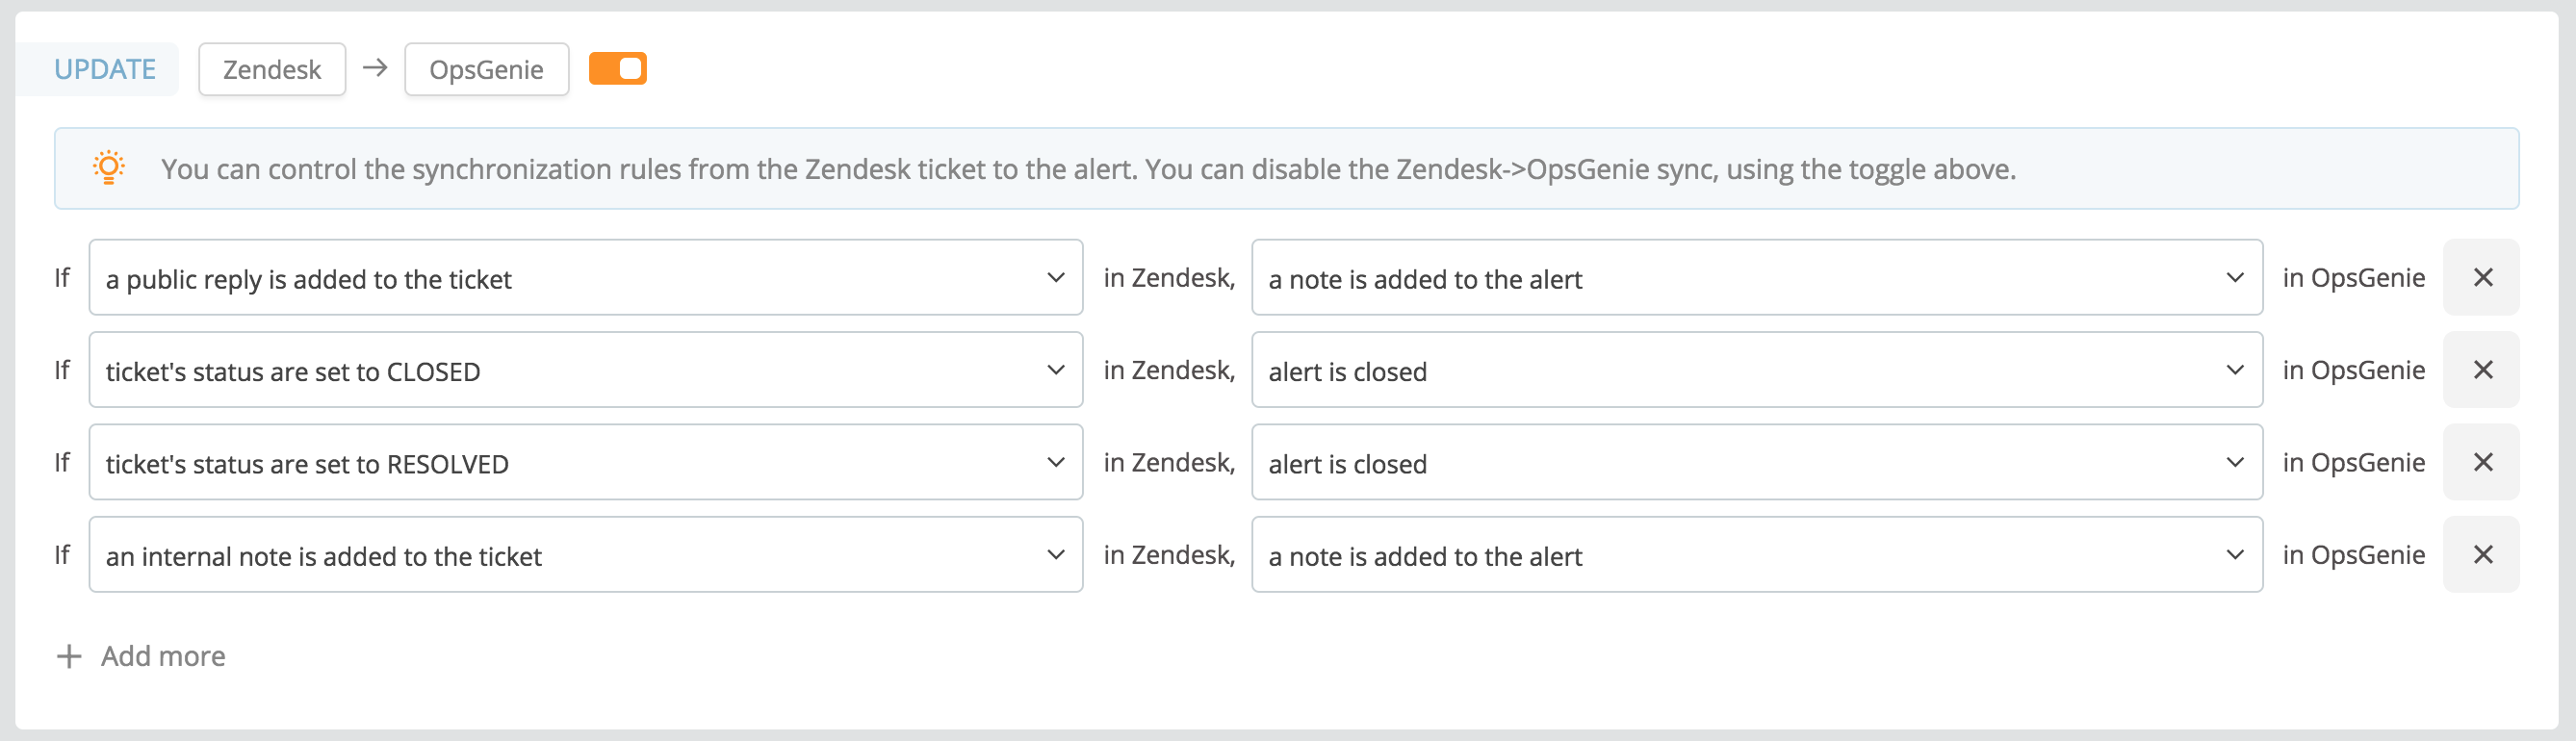 Zendesk Integration on identity mapping, title mapping, field mapping, account mapping, content mapping, system mapping, site mapping, topology mapping, twitter mapping, forest mapping,